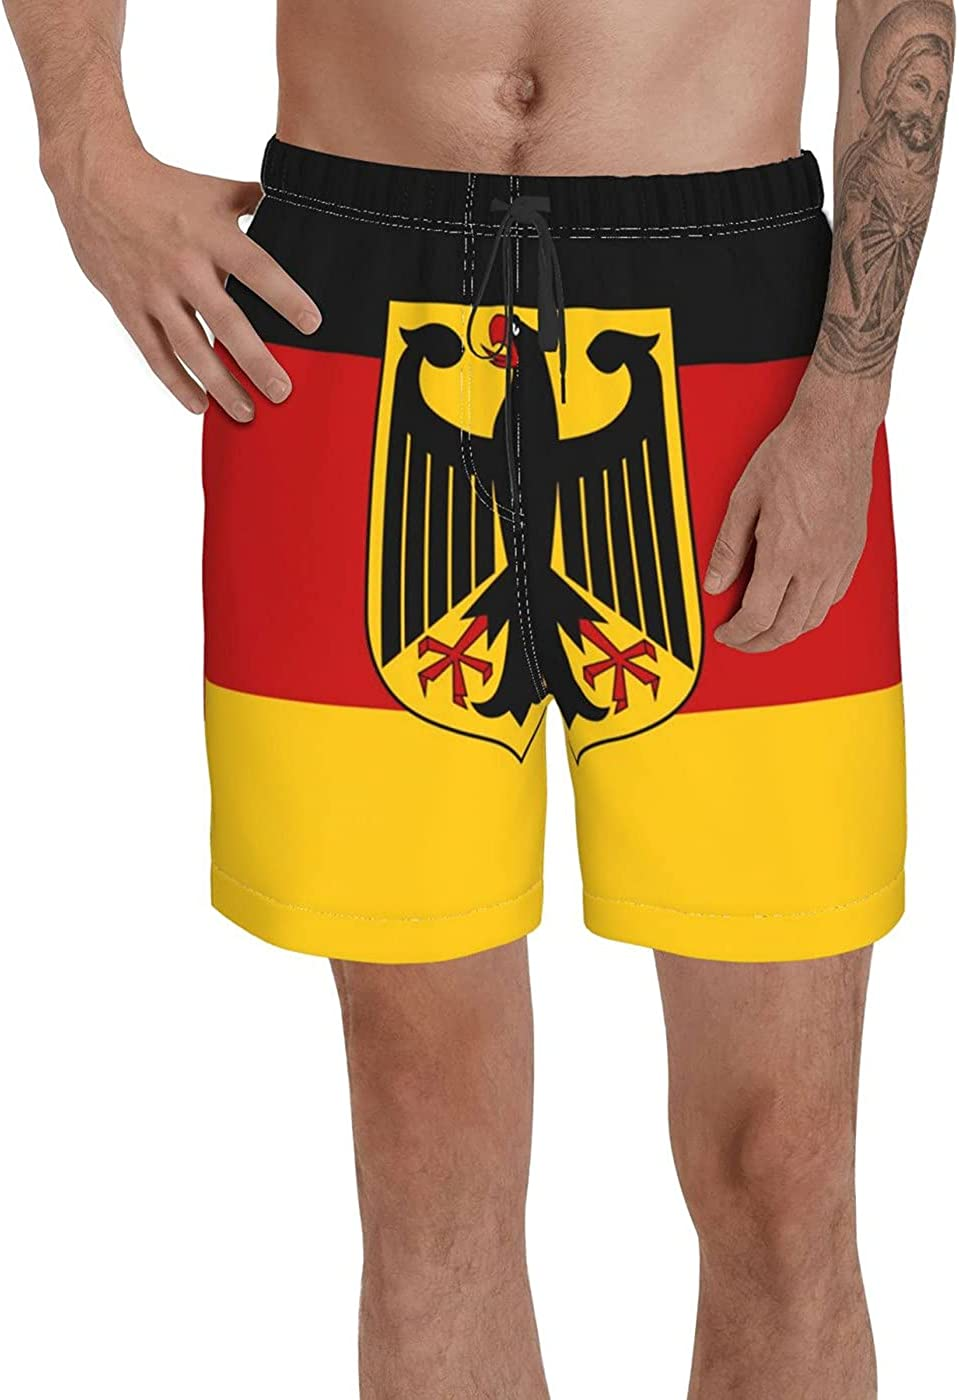 Count German State Ensign Flag Men's 3D Printed Funny Summer Quick Dry Swim Short Board Shorts with